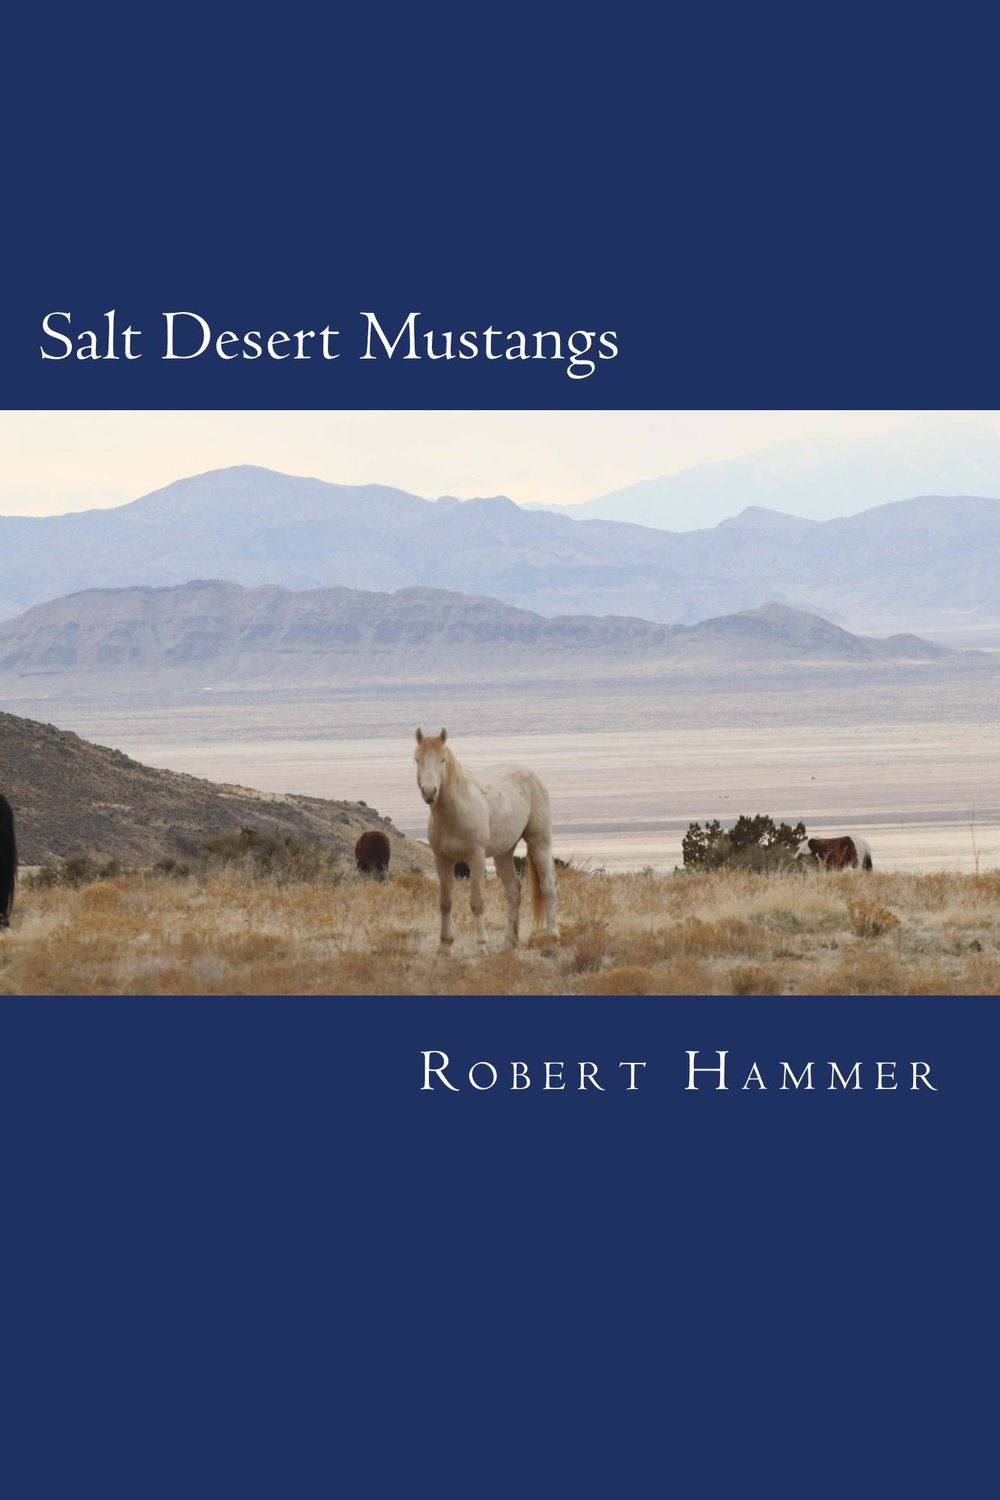 Available Now! - Salt Desert Mustangs: Discovering wild horses and historic trails in Tooele County, UtahWhat do Kit Carson, the Donner Party, Mark Twain, Dwight Eisenhower and the founder of the Indianapolis 500 have in common? They all tie into the history of the roads and trails crossing Tooele County, Utah. Explore the fascinating history of the region these magnificent horses continue to call home.Extended through January 2019: 80% of proceeds will be donated to the American Wild Horse Campaign. The remaining 20% will help keep this free web resource online.Click here to order your copy today!